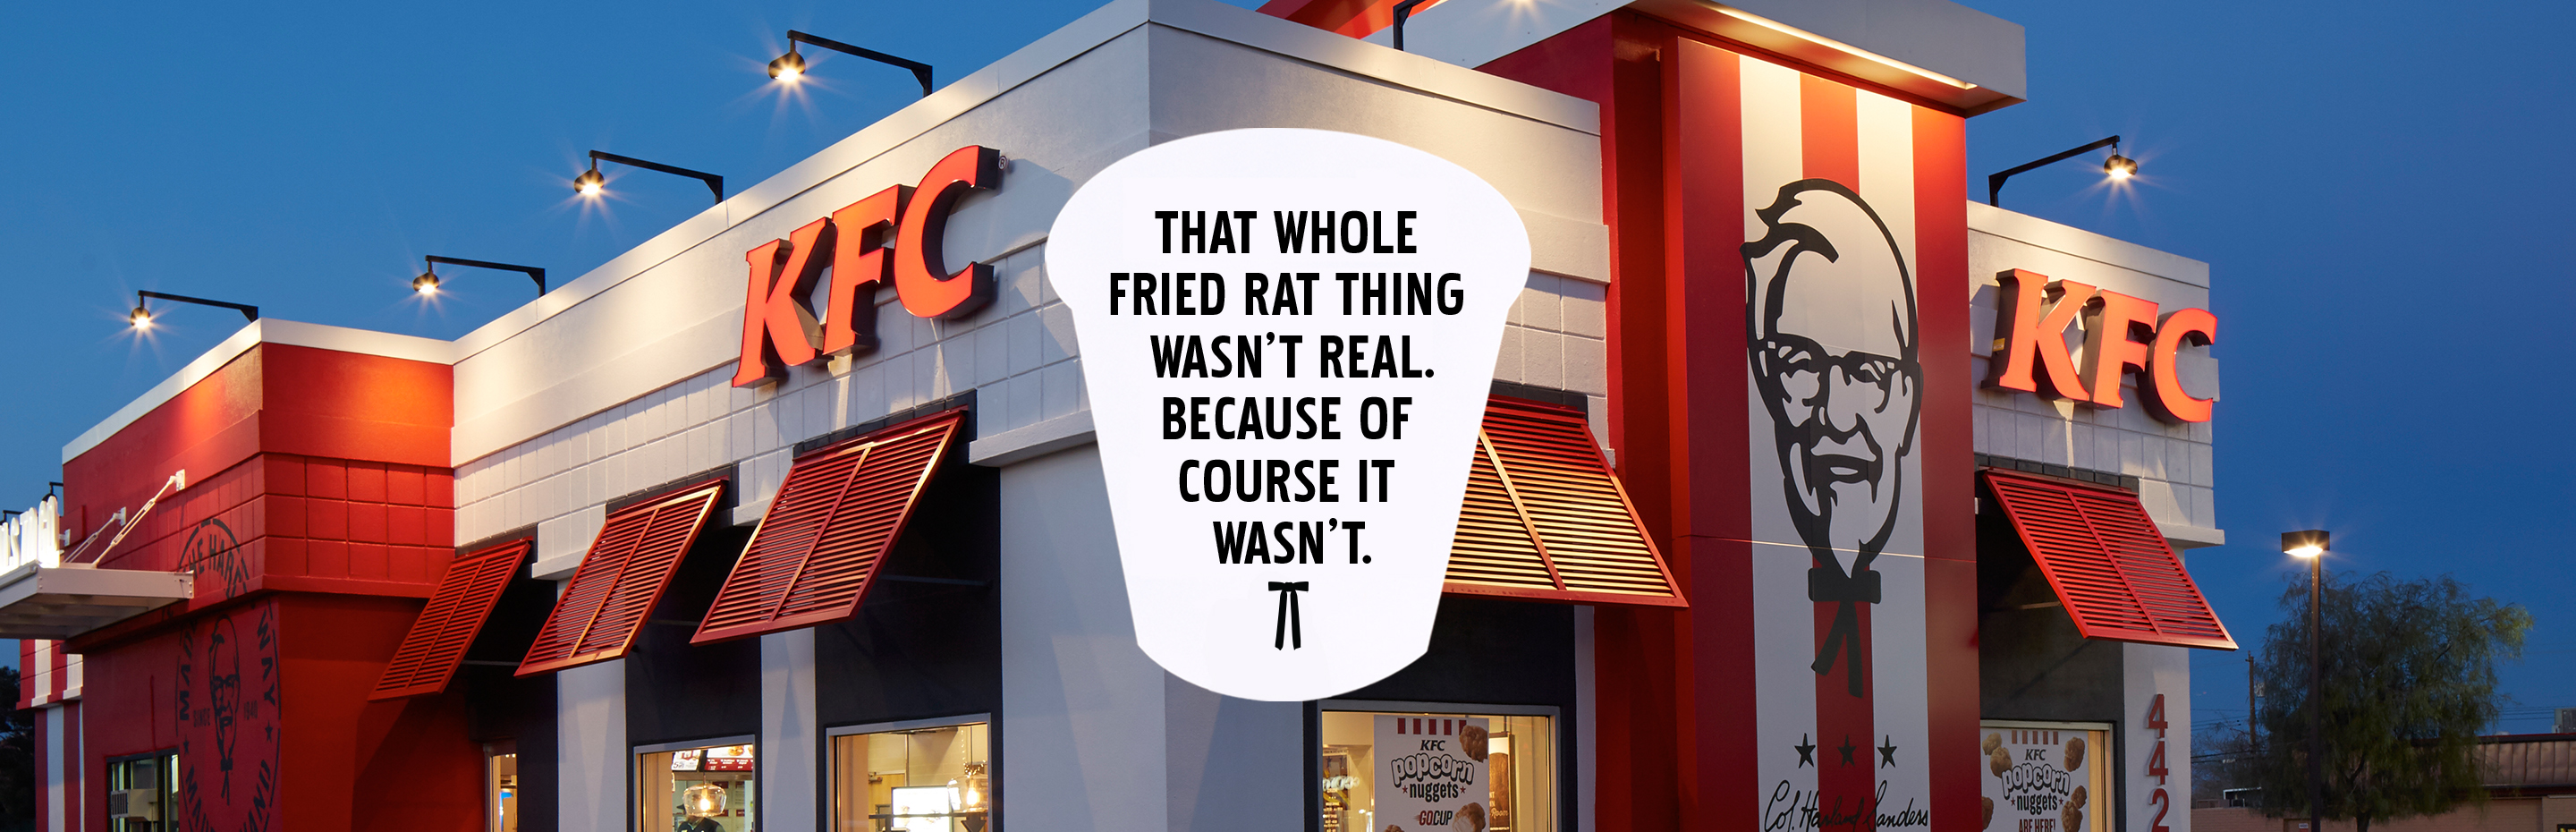 That whole KFC fried rat thing wasn't real. Because of course it wasn't.